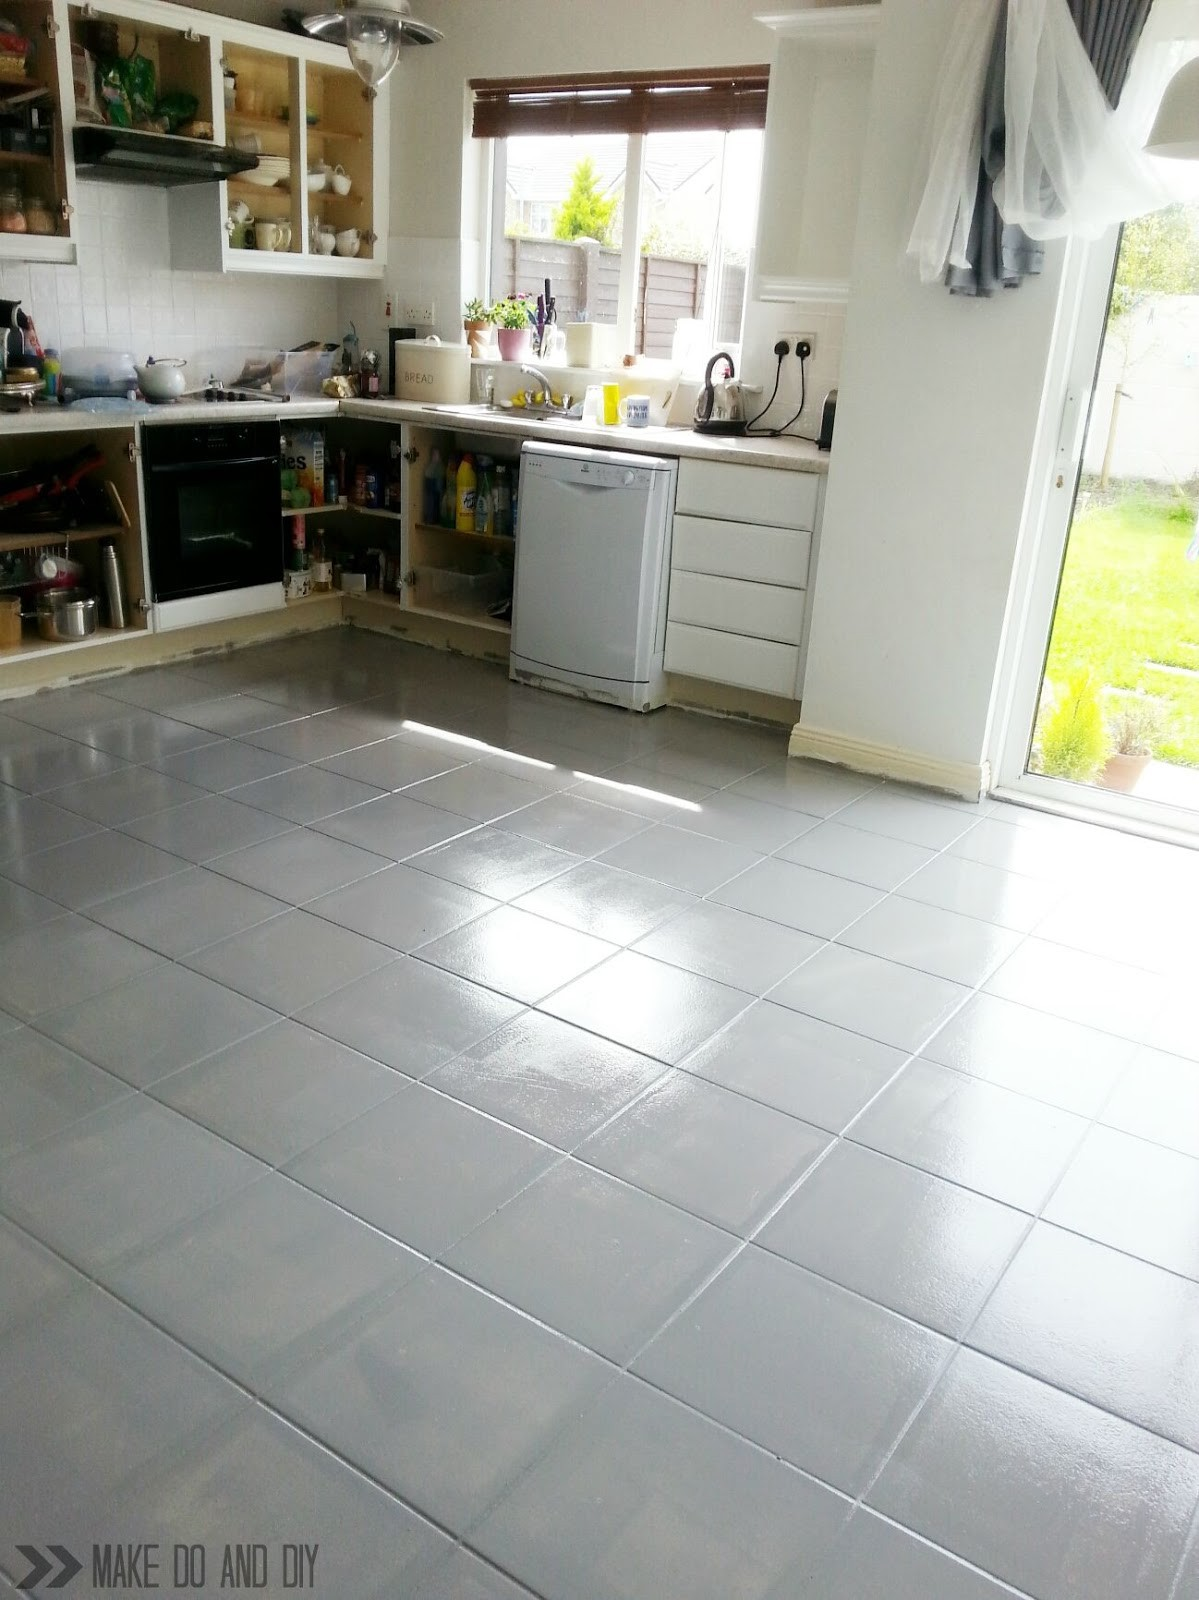 Can Ceramic Floor Tile Be Painted